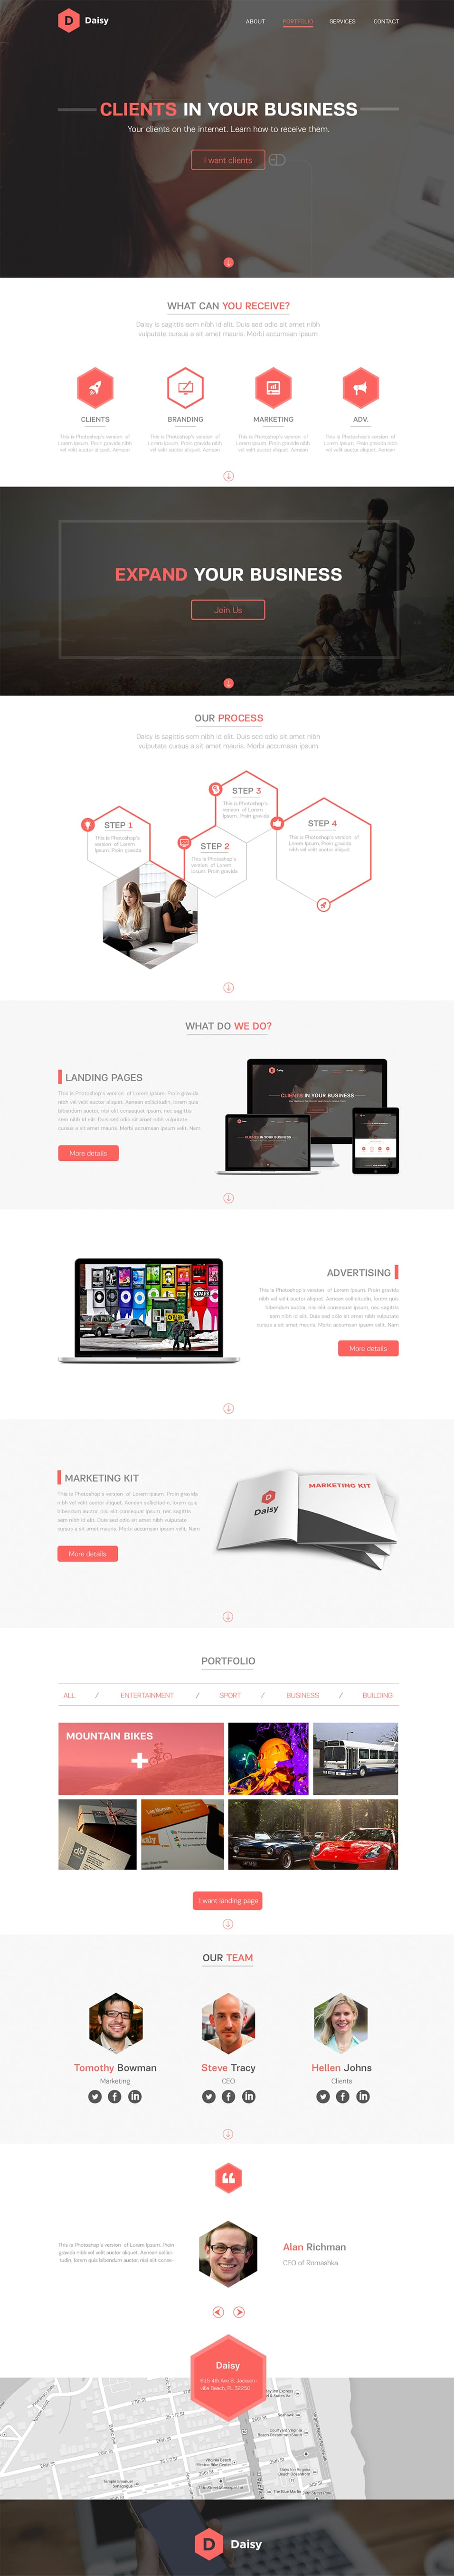 Daisy - Free Landing Page PSD